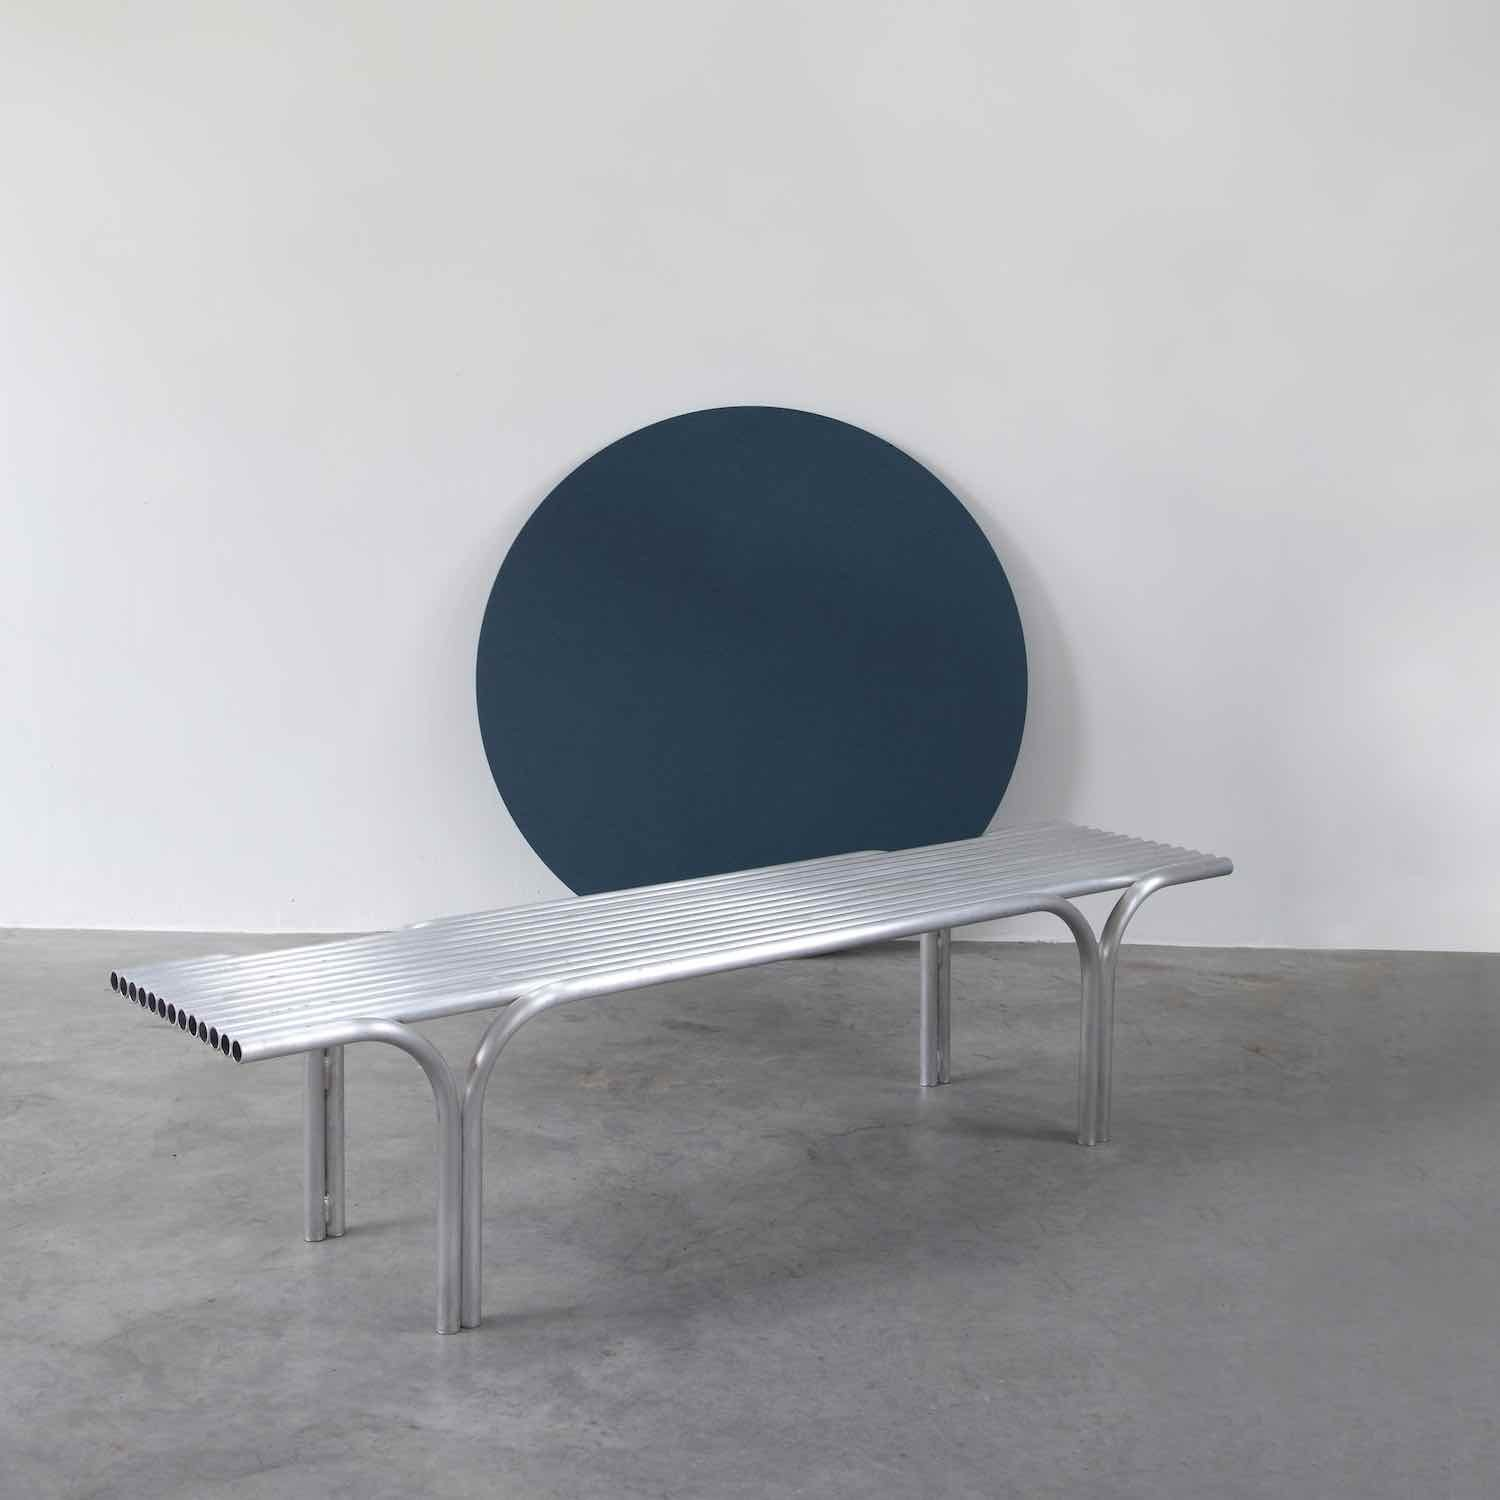 ALLTUBES tubular furniture by Muller Van Severen - Courtesy of Valerie Traan gallery.